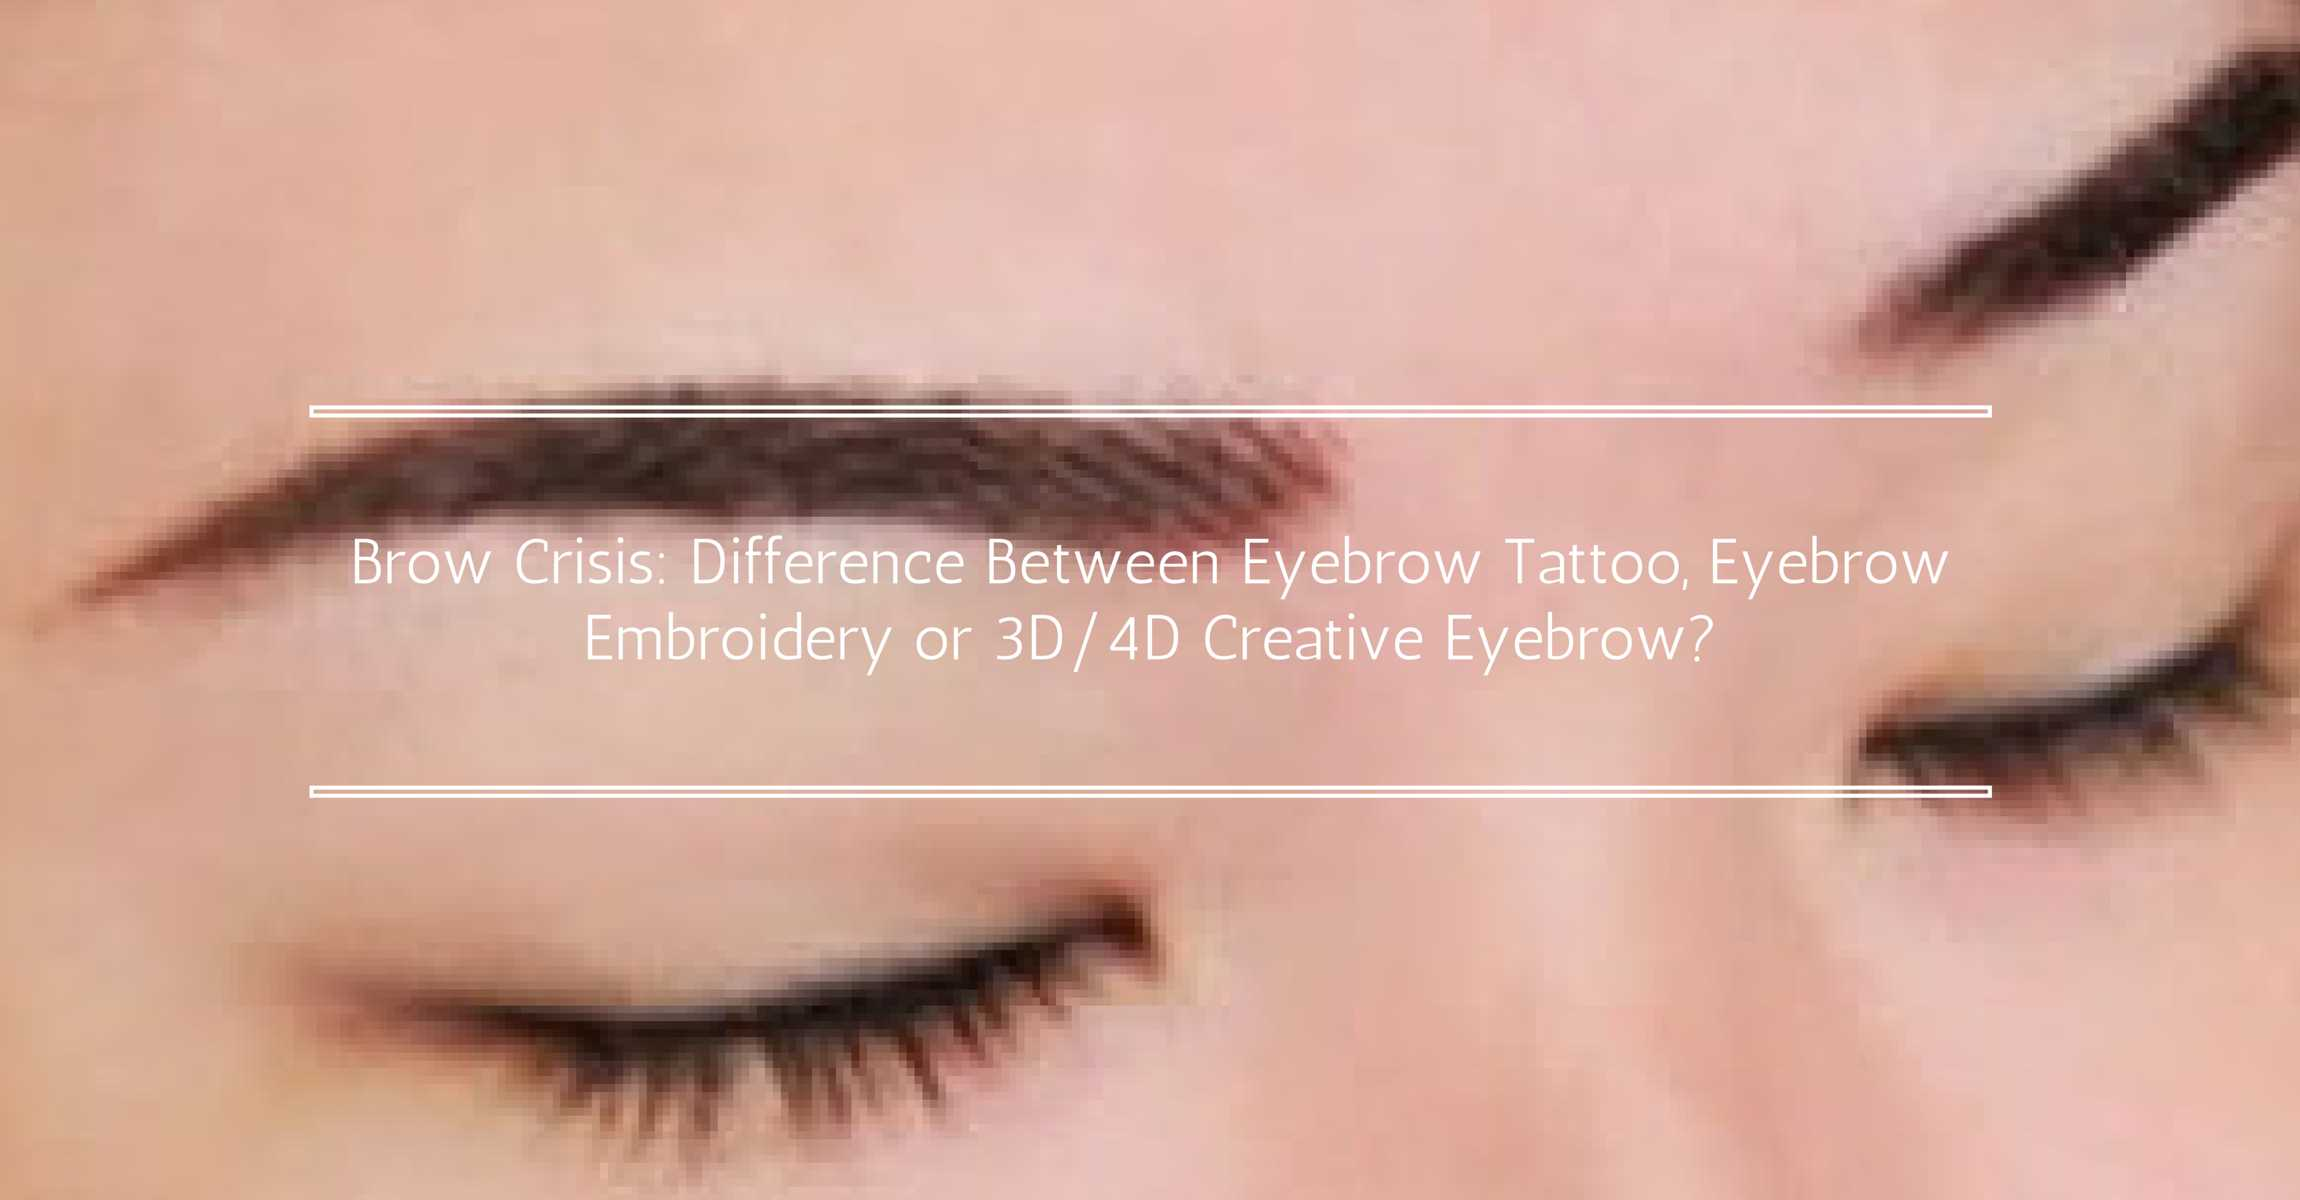 Eyebrow Tattoo, Eyebrow Embroidery or 3D/4D Creative Eyebrow in